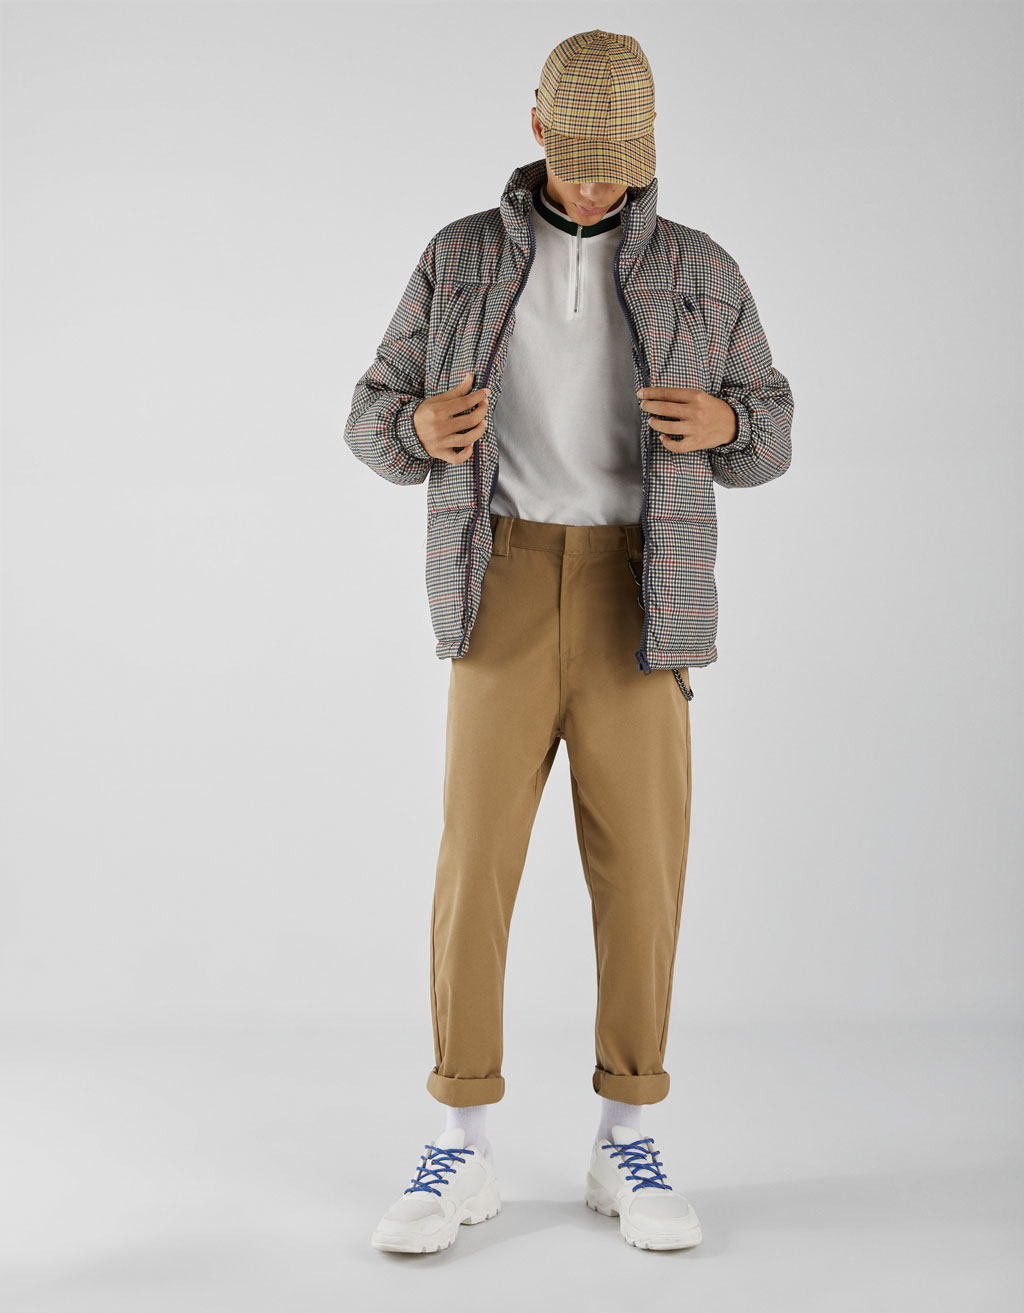 Worker-style trousers